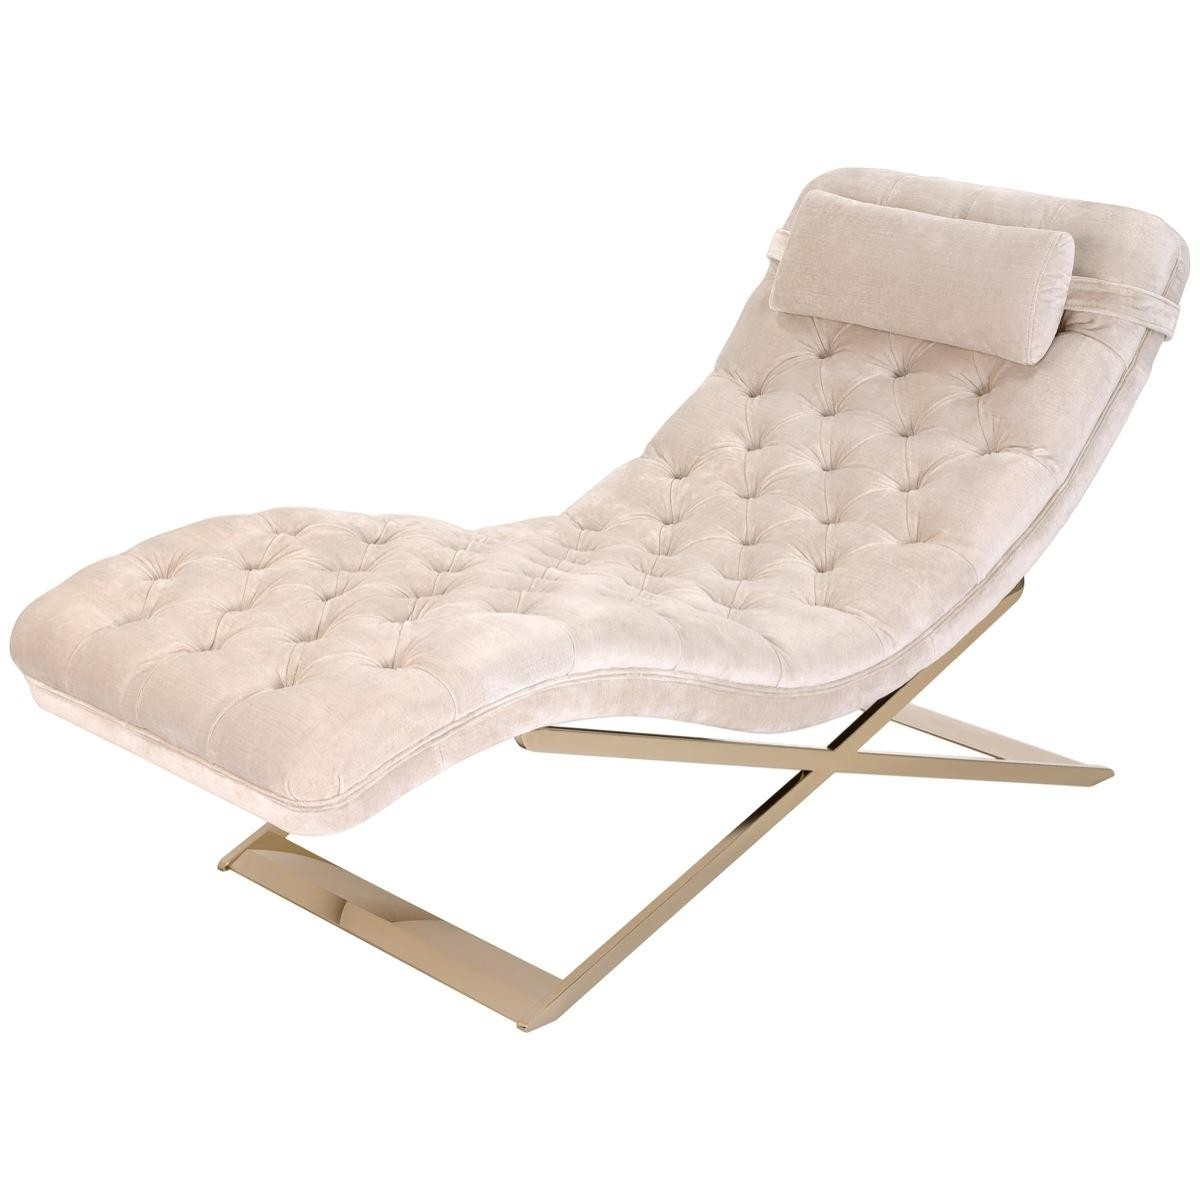 Gold Chaise Lounge Chairs Intended For Recent The Well Appointed House – Luxuries For The Home – The Well (View 4 of 15)